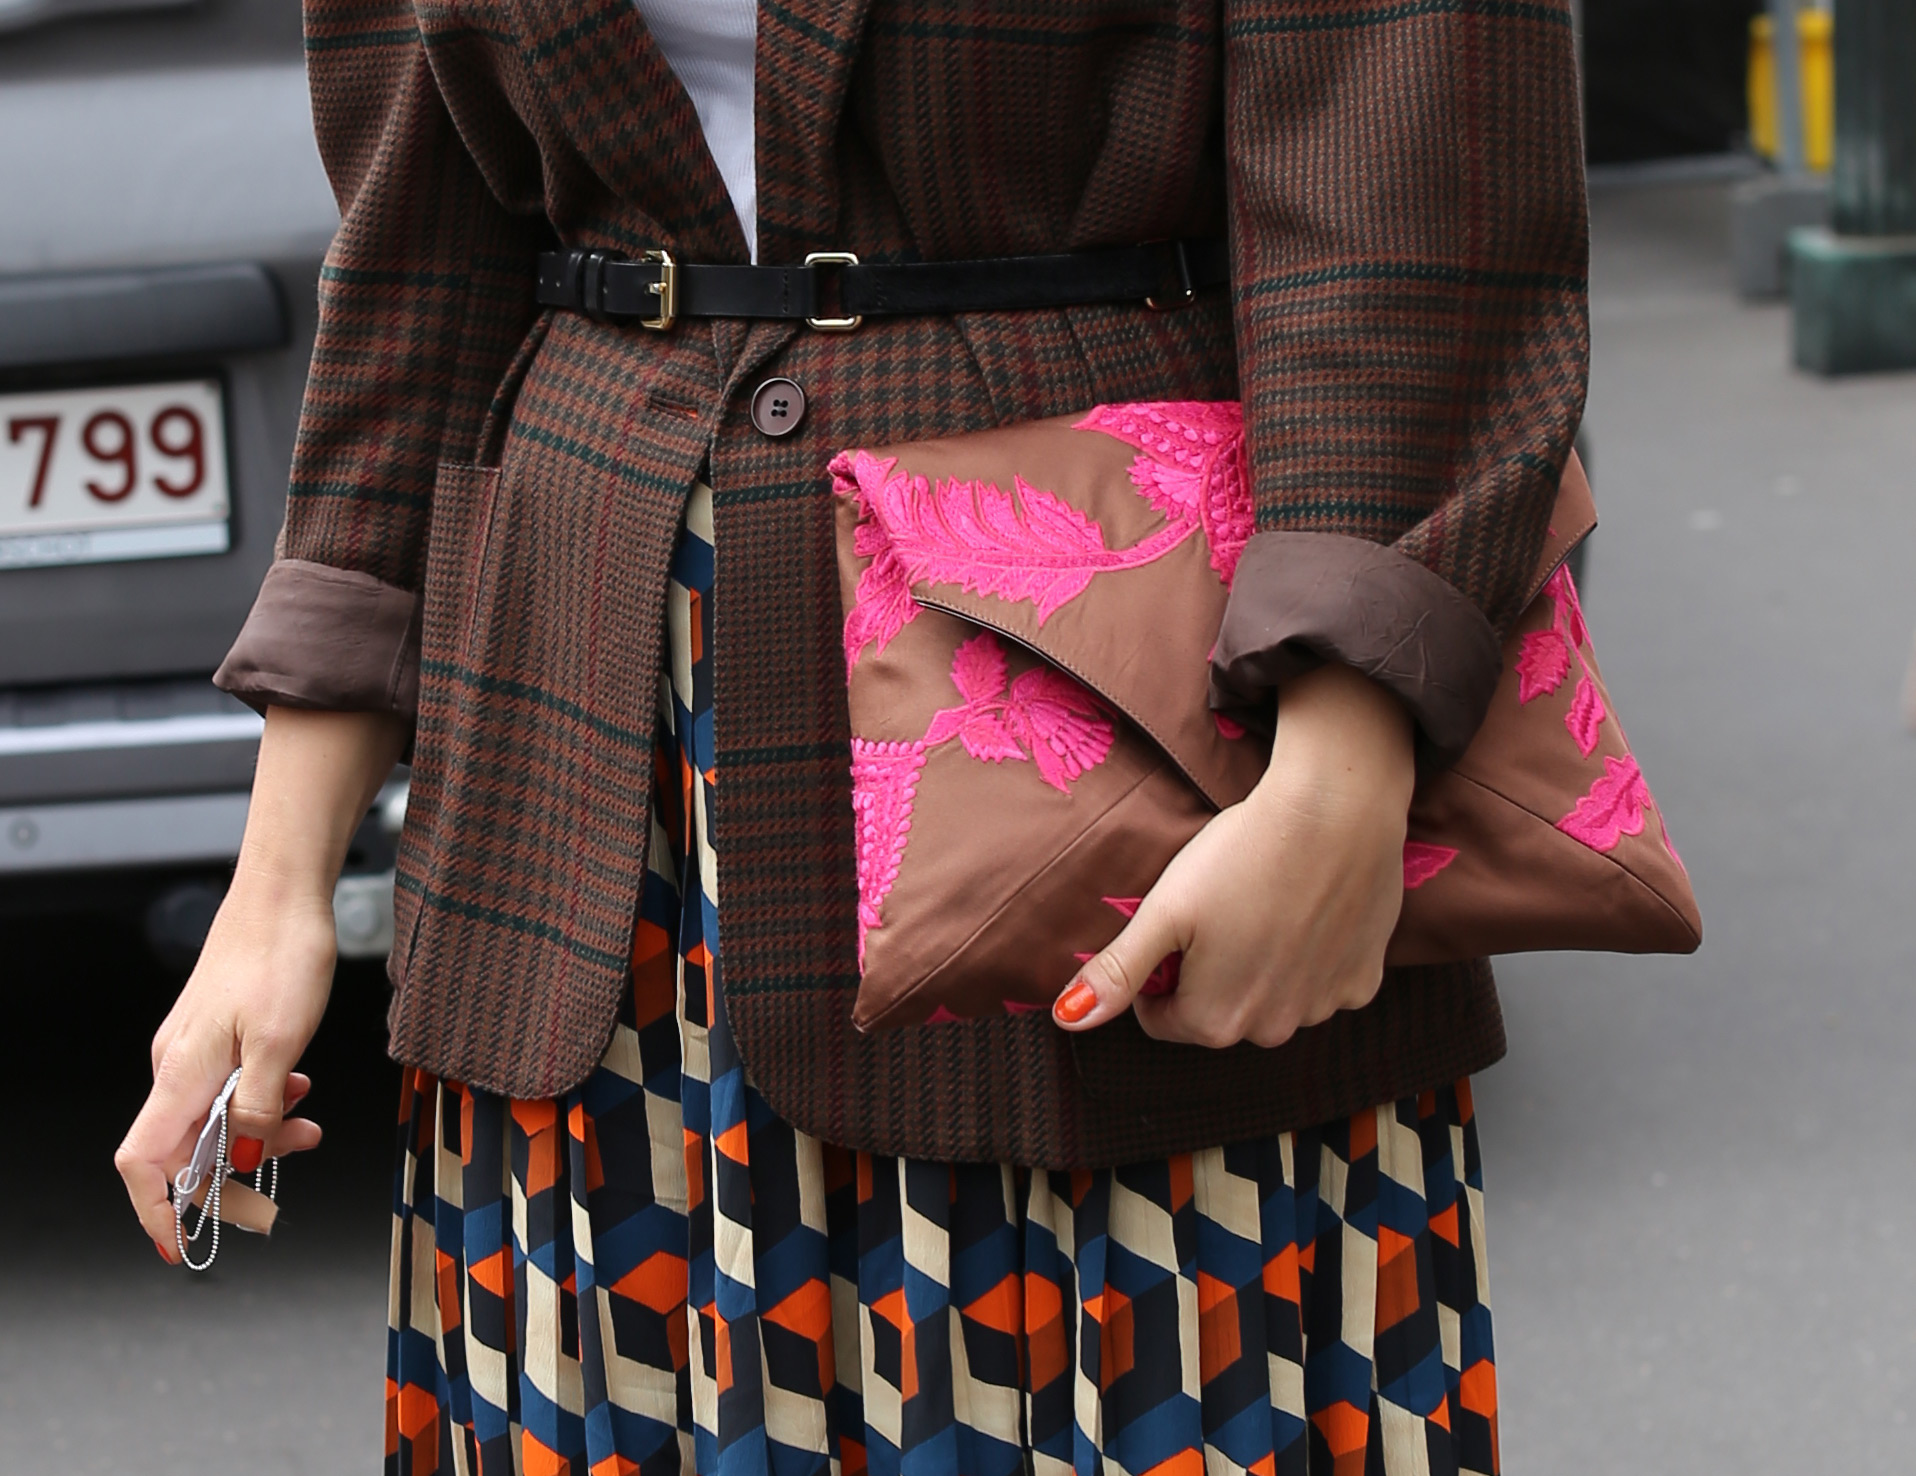 In Paris: accessories for the finishing touch